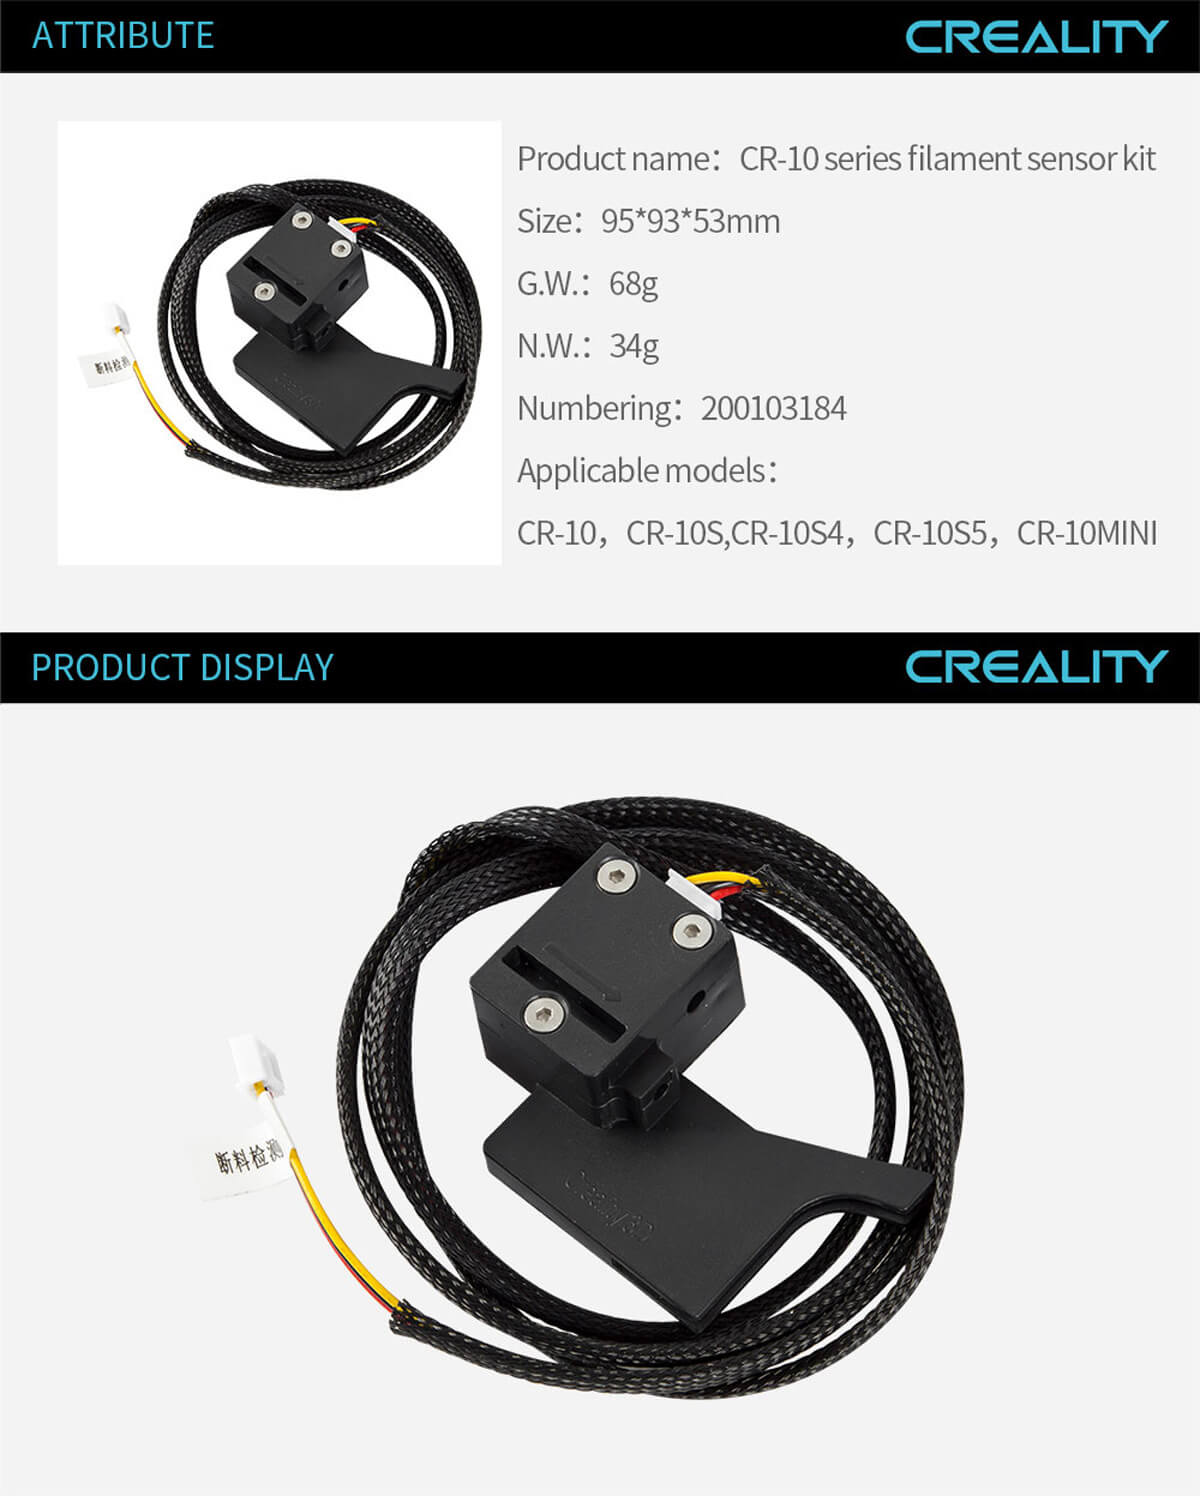 creality-3d-printer-CR-10-Series-Filament-Sensor-Kit-11